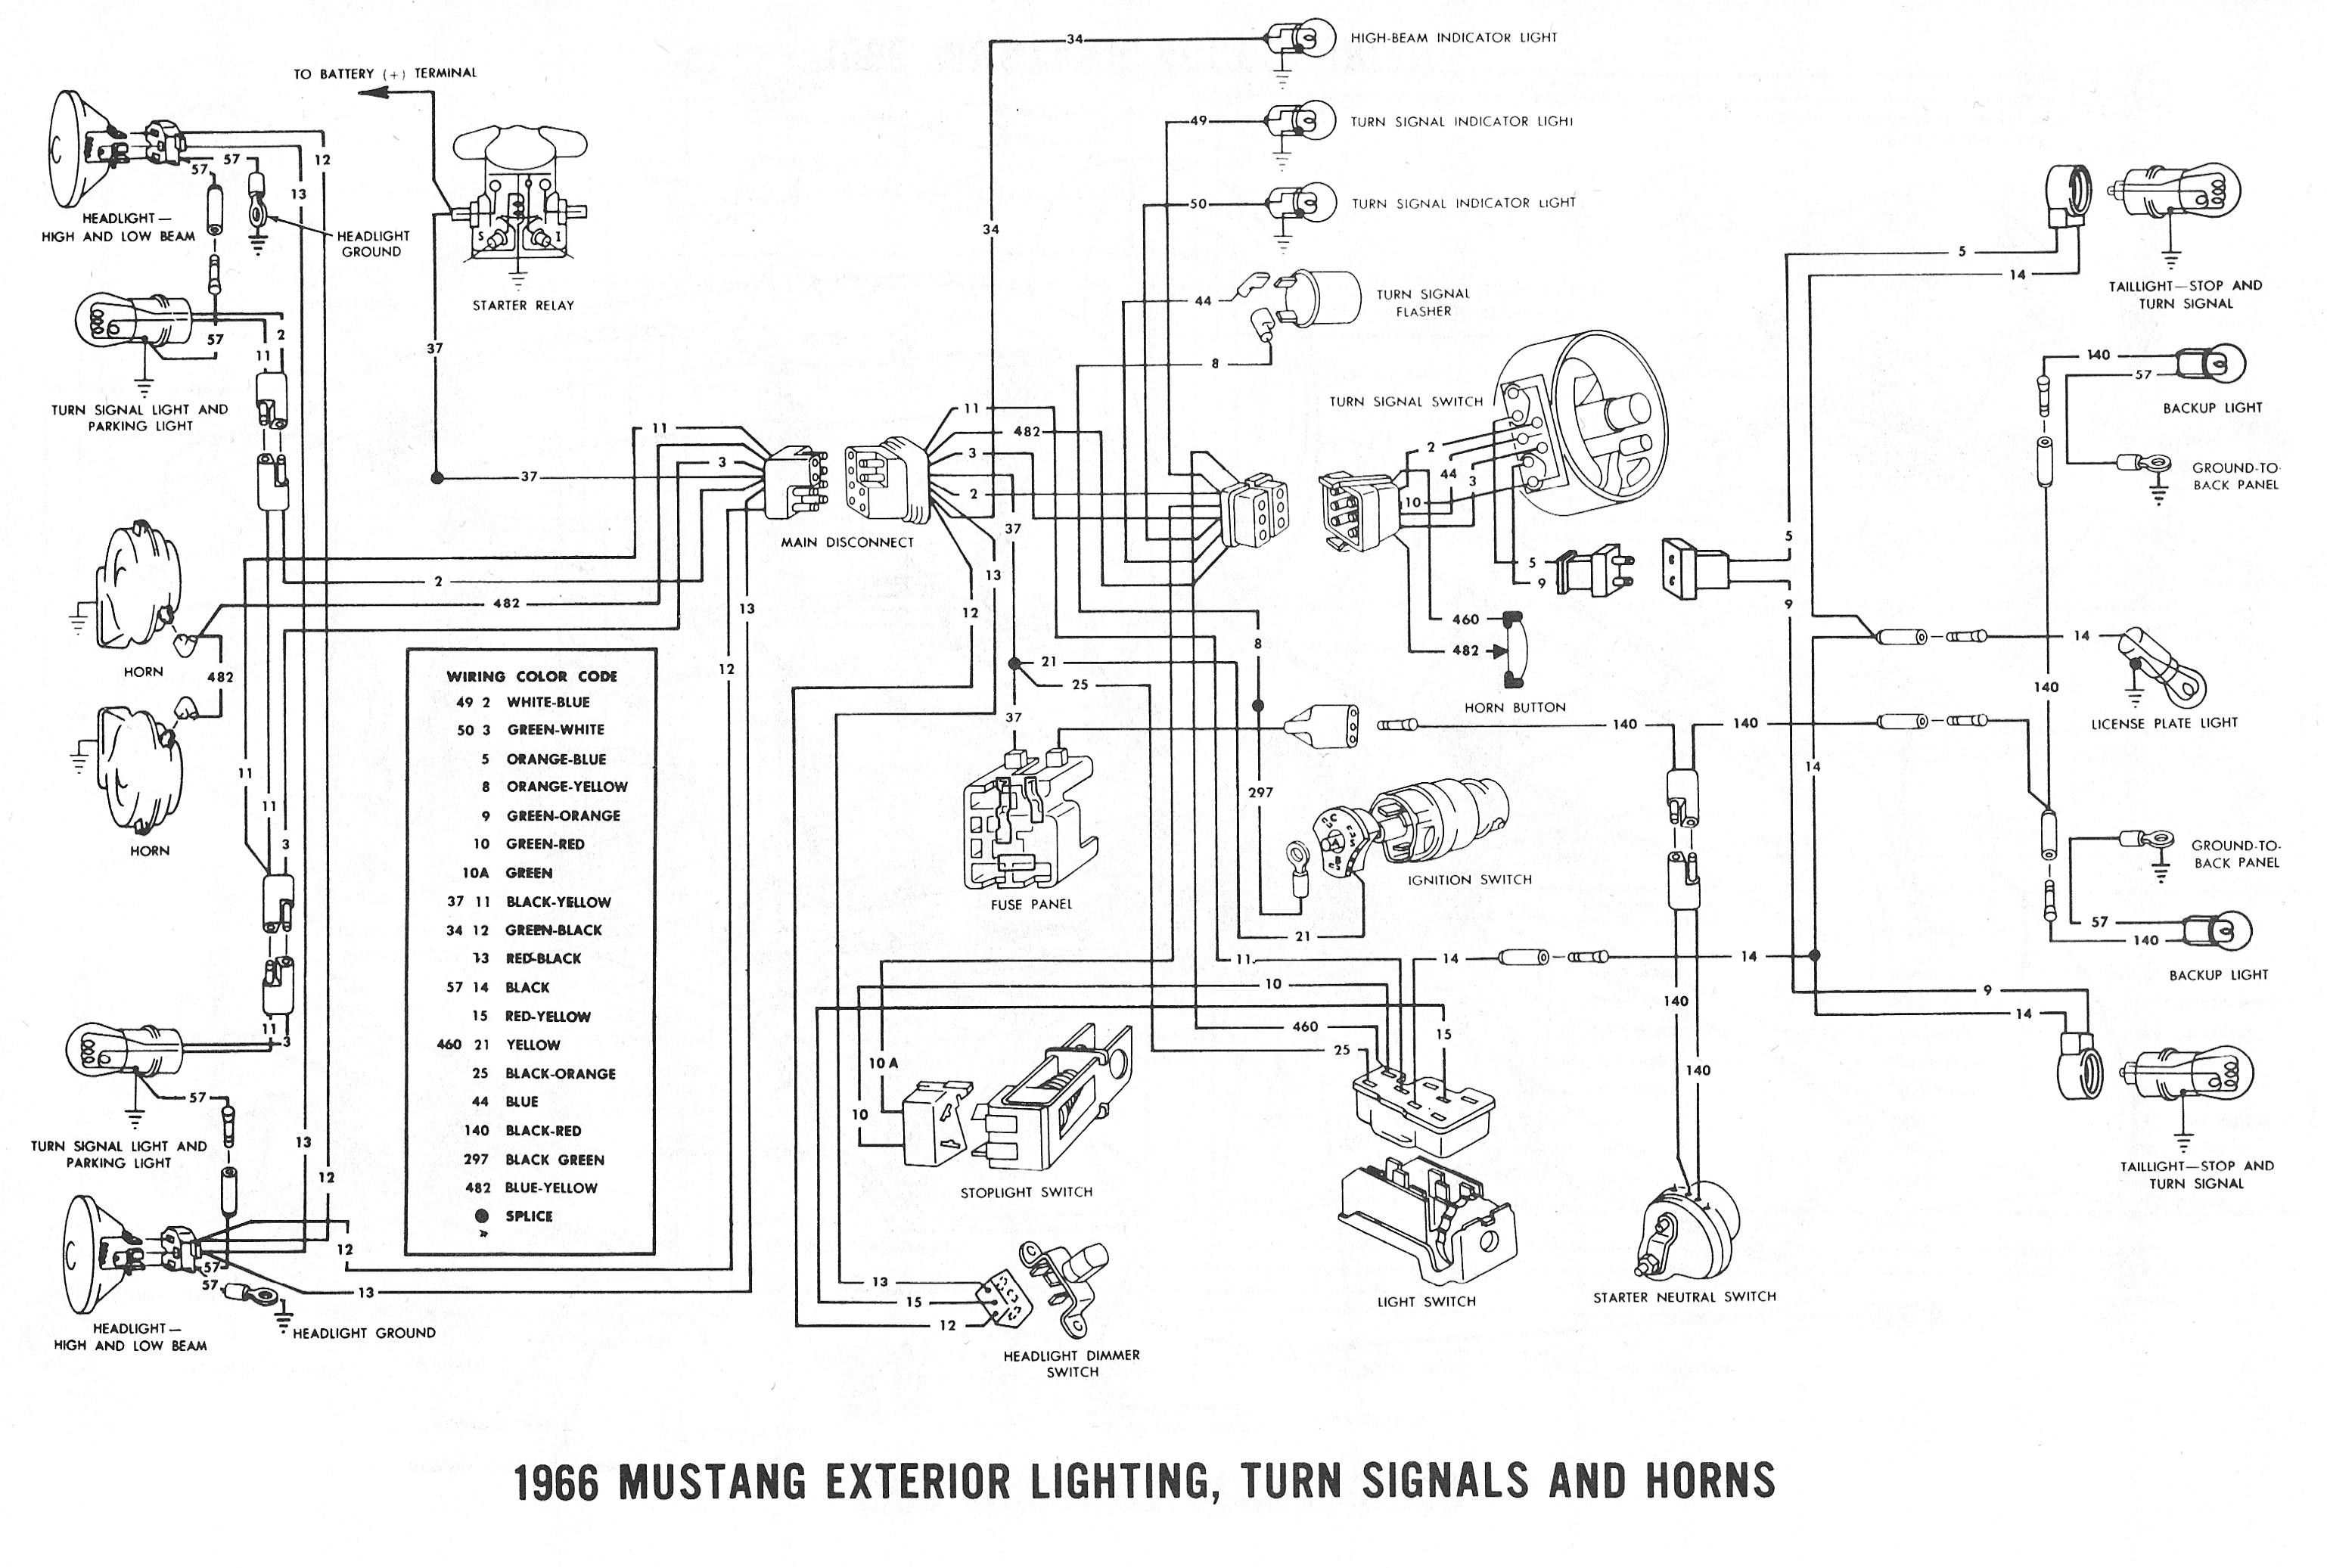 1966 Mustang Ke Line Diagram Wiring Schematic Opinions About Water Softener Ford F100 Simple Rh David Huggett Co Uk 66